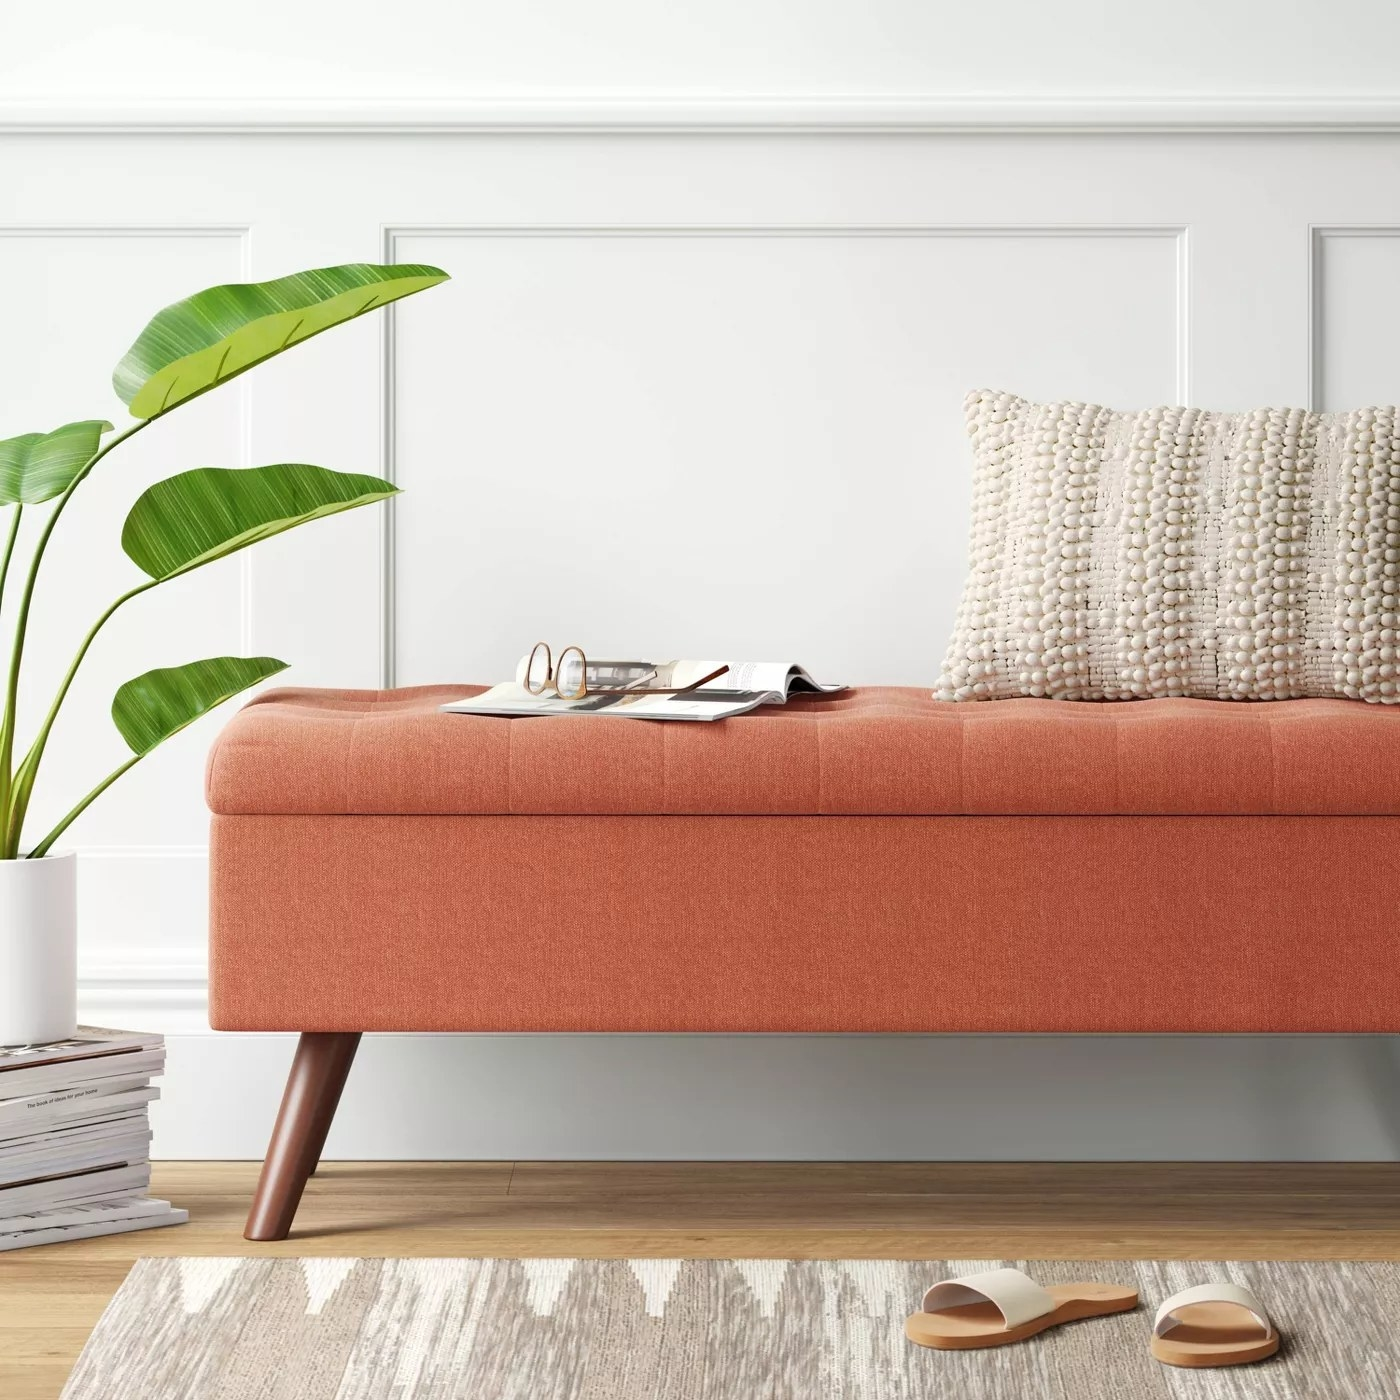 The tufted storage bench with wooden legs in an entryway